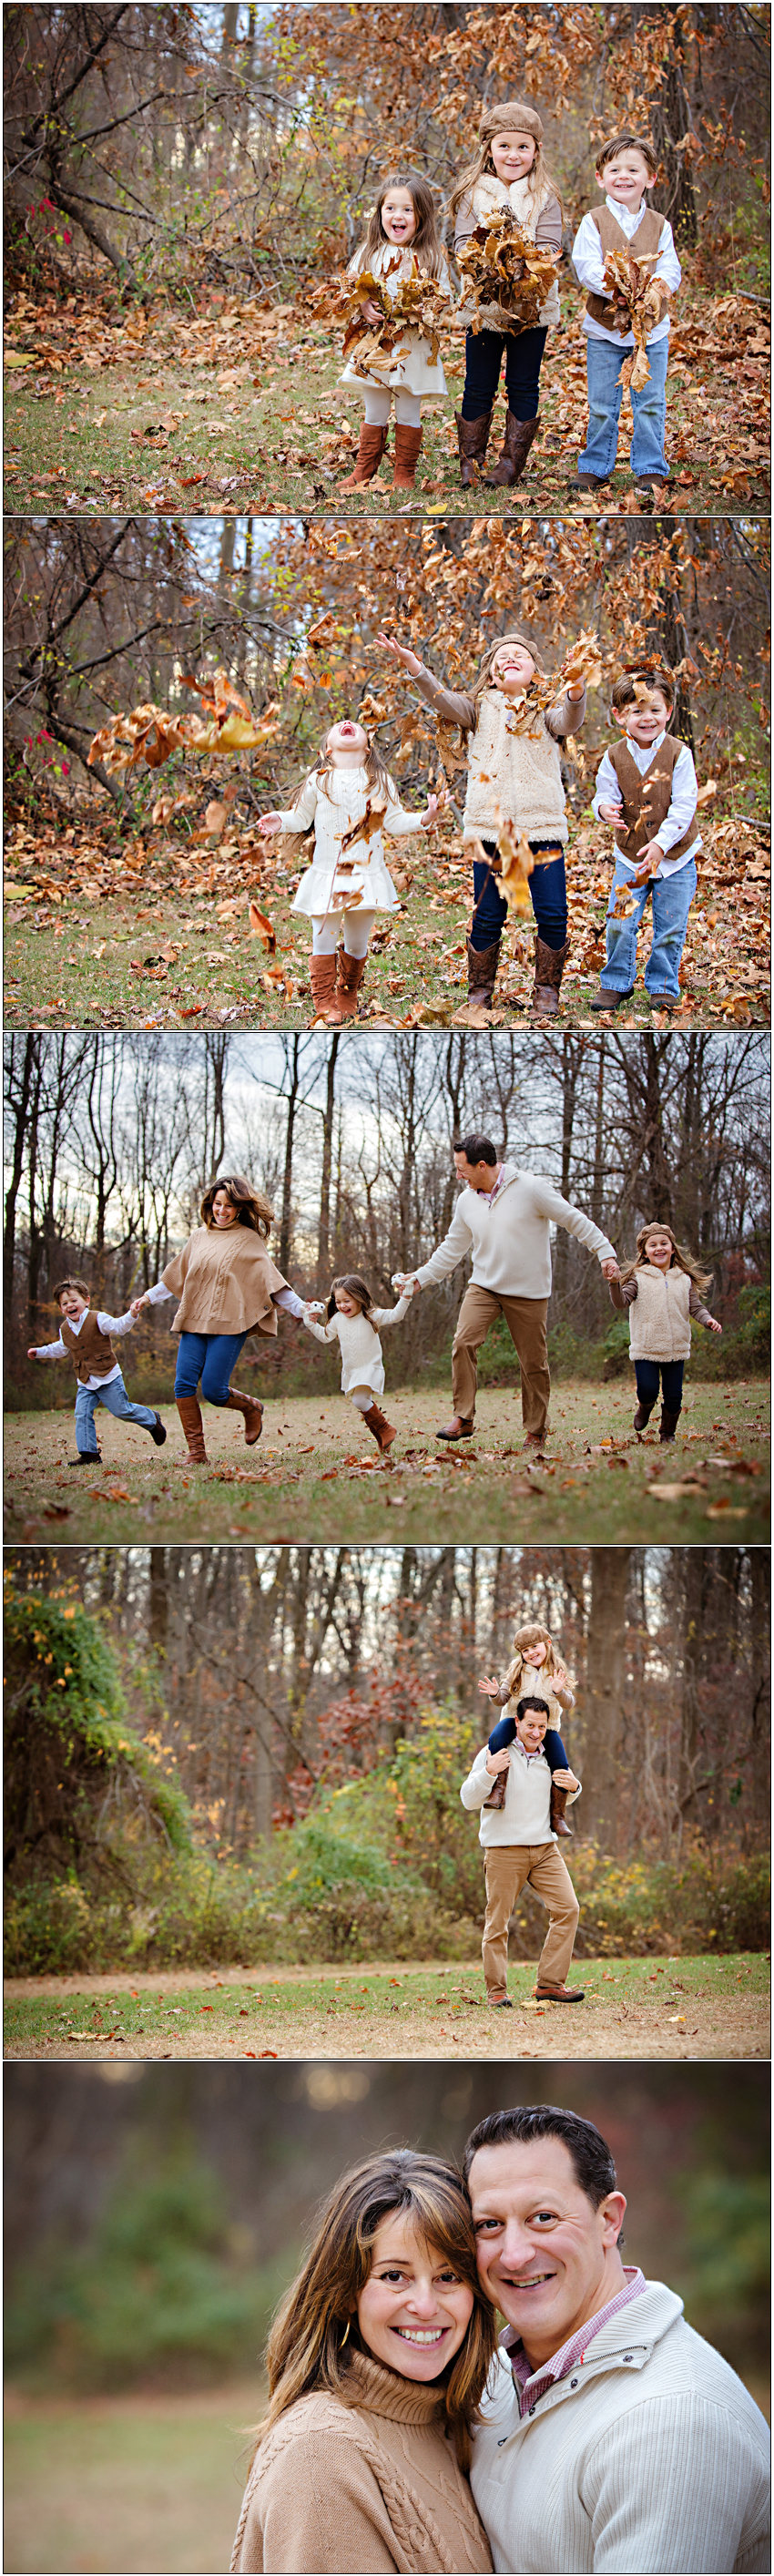 Playful Charlotte, NC Family Portraits in Autumn